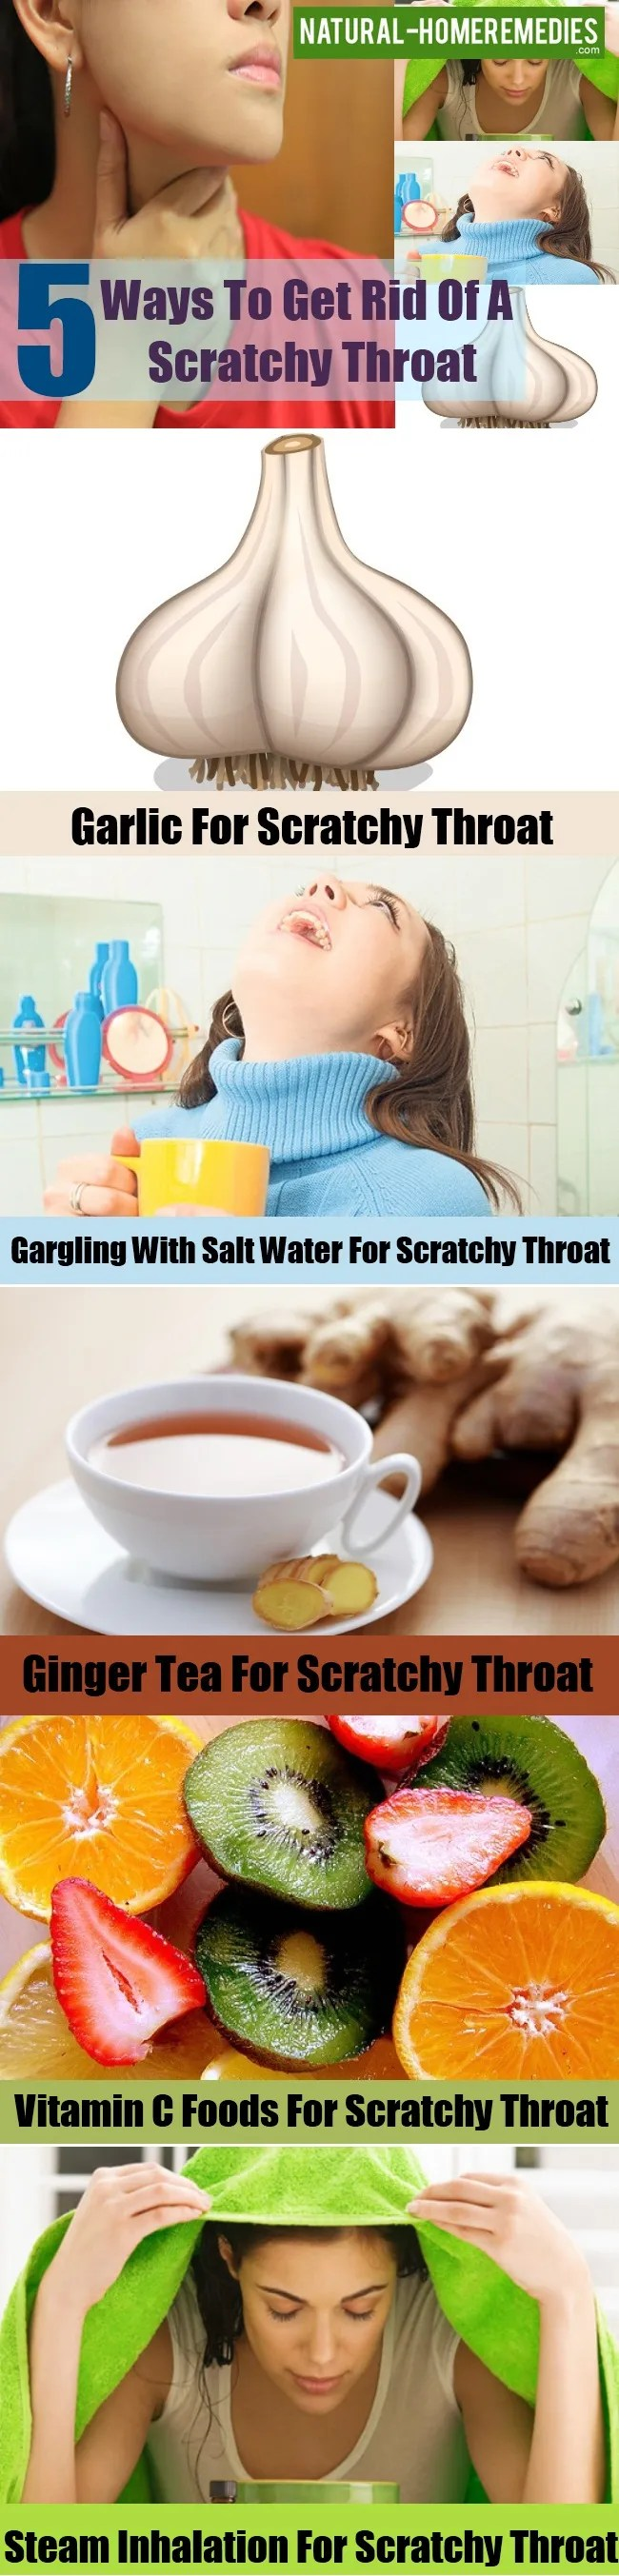 Get Rid Of A Scratchy Throat